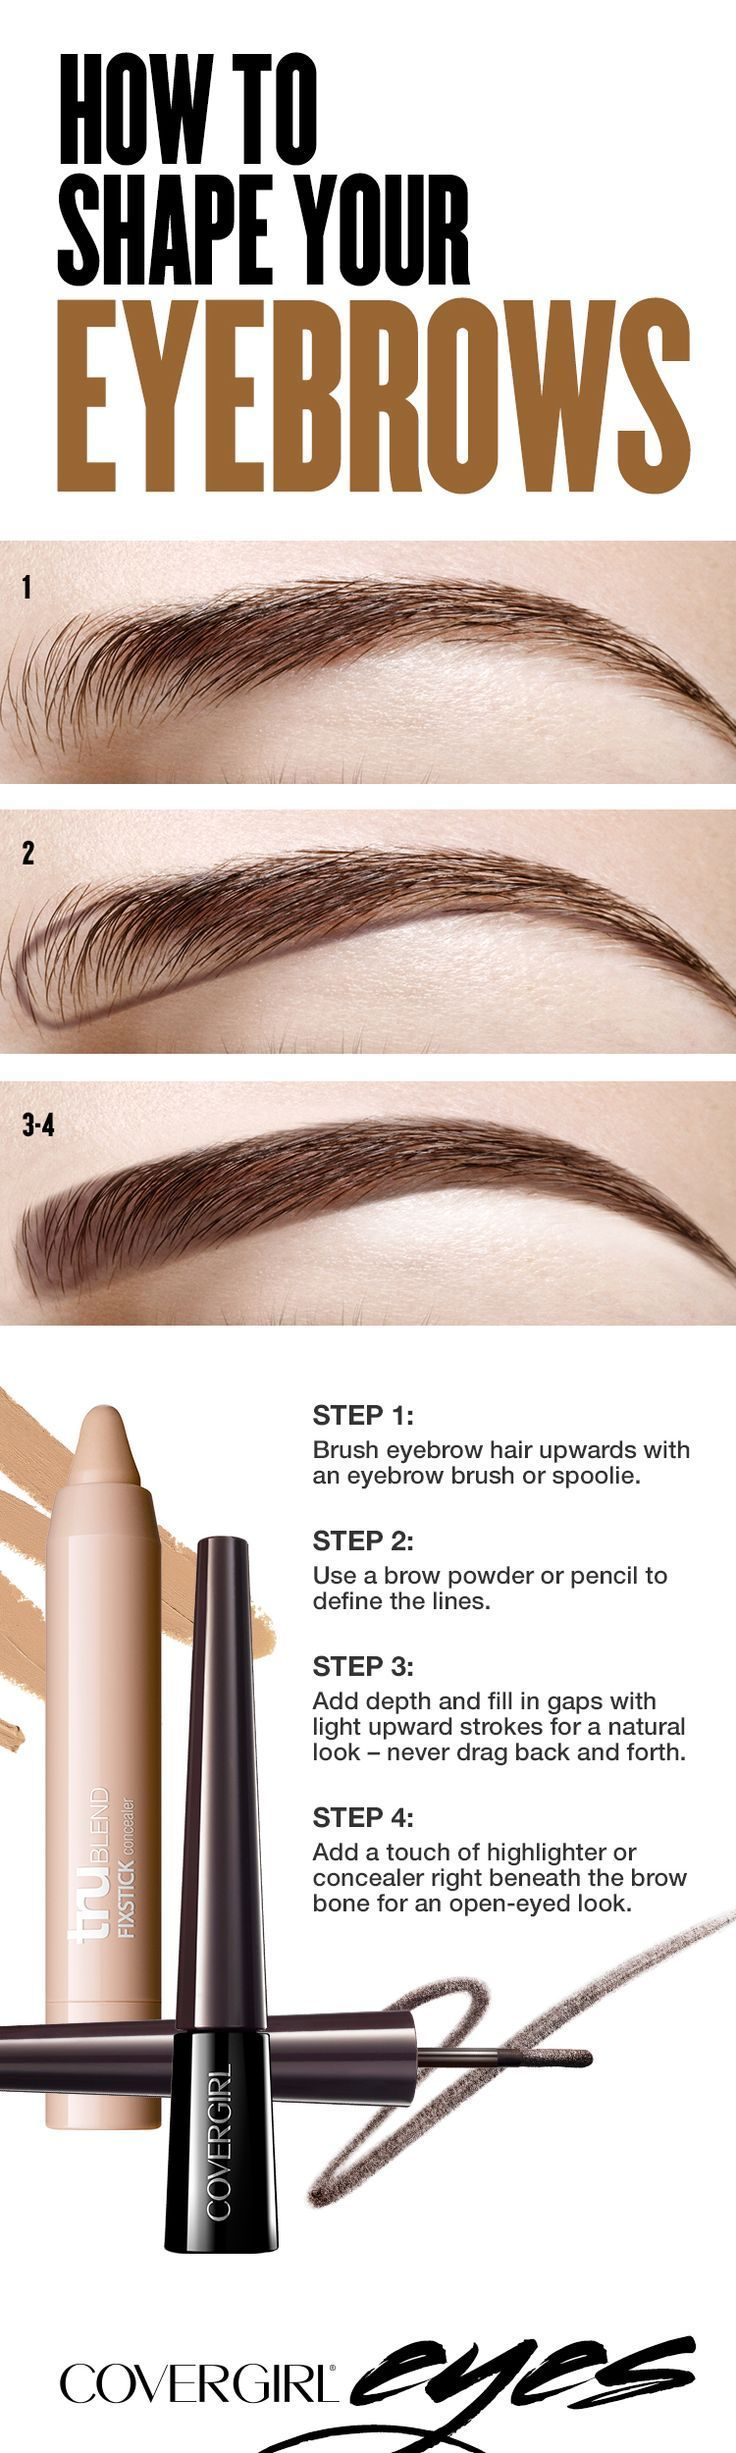 A bold eyebrow isn't only on trend, it automatically helps you look more pulled together – and it's easy to do! STEP 1: Brush eyebrow hair upwards with an eyebrow brush or spoolie. STEP 2: Use a brow powder or pencil to define the lines. STEP 3: Add depth and fill in gaps with light upward strokes for a natural look – never drag back and forth. STEP 4: Add a touch of highlighter or concealer right beneath the brow bone for an open-eyed look | thebeautyspotqld.com.au